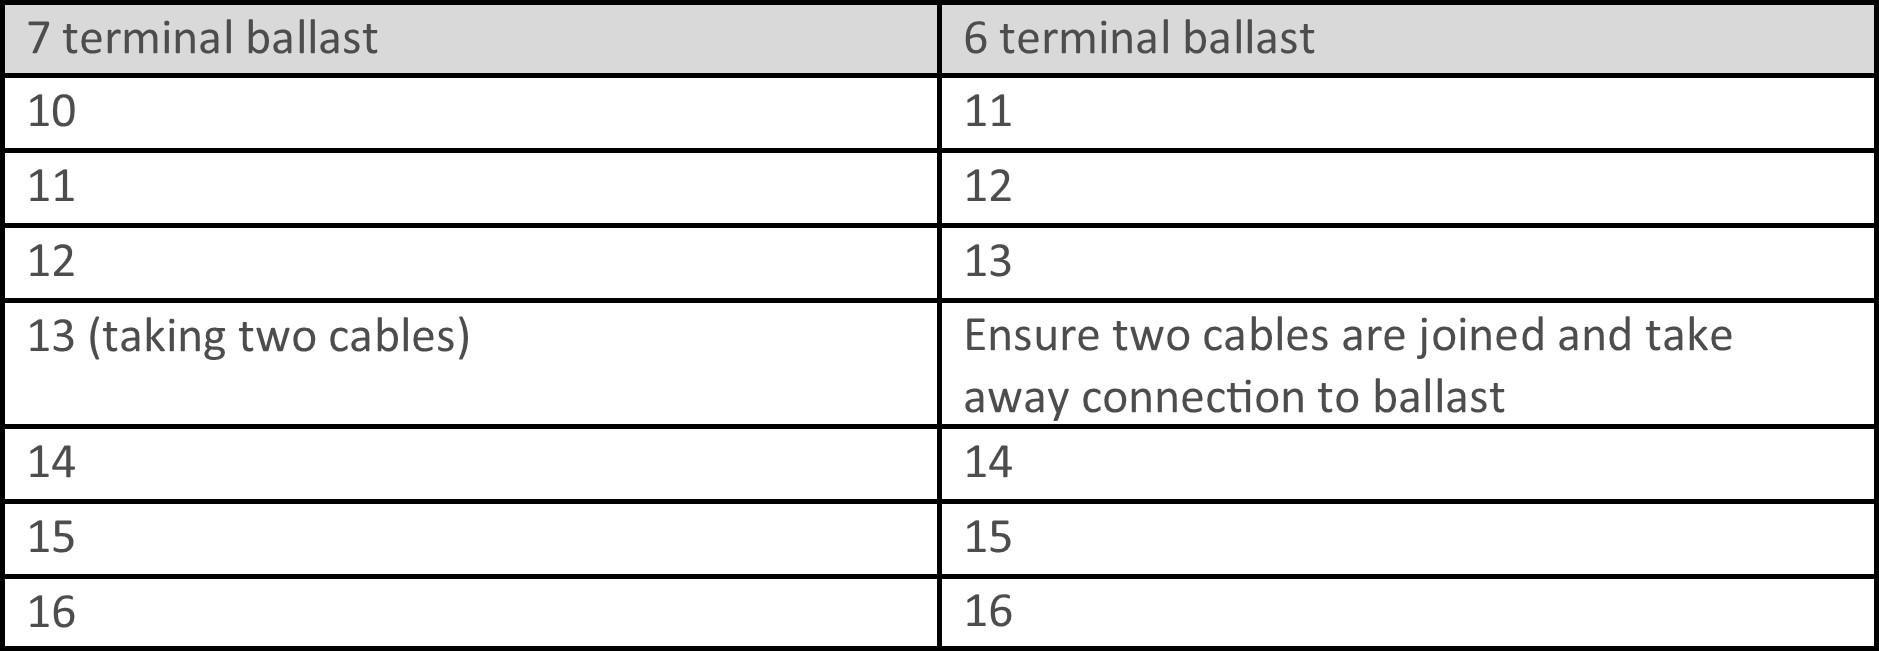 Wiring A Ballast With Fewer Terminals Rlt Onsite Diagram On Philips 4 Lamp Ho T5 Table 3 Configurations Vary Between Manufacturers But By Tracing The Pairs Diagrams